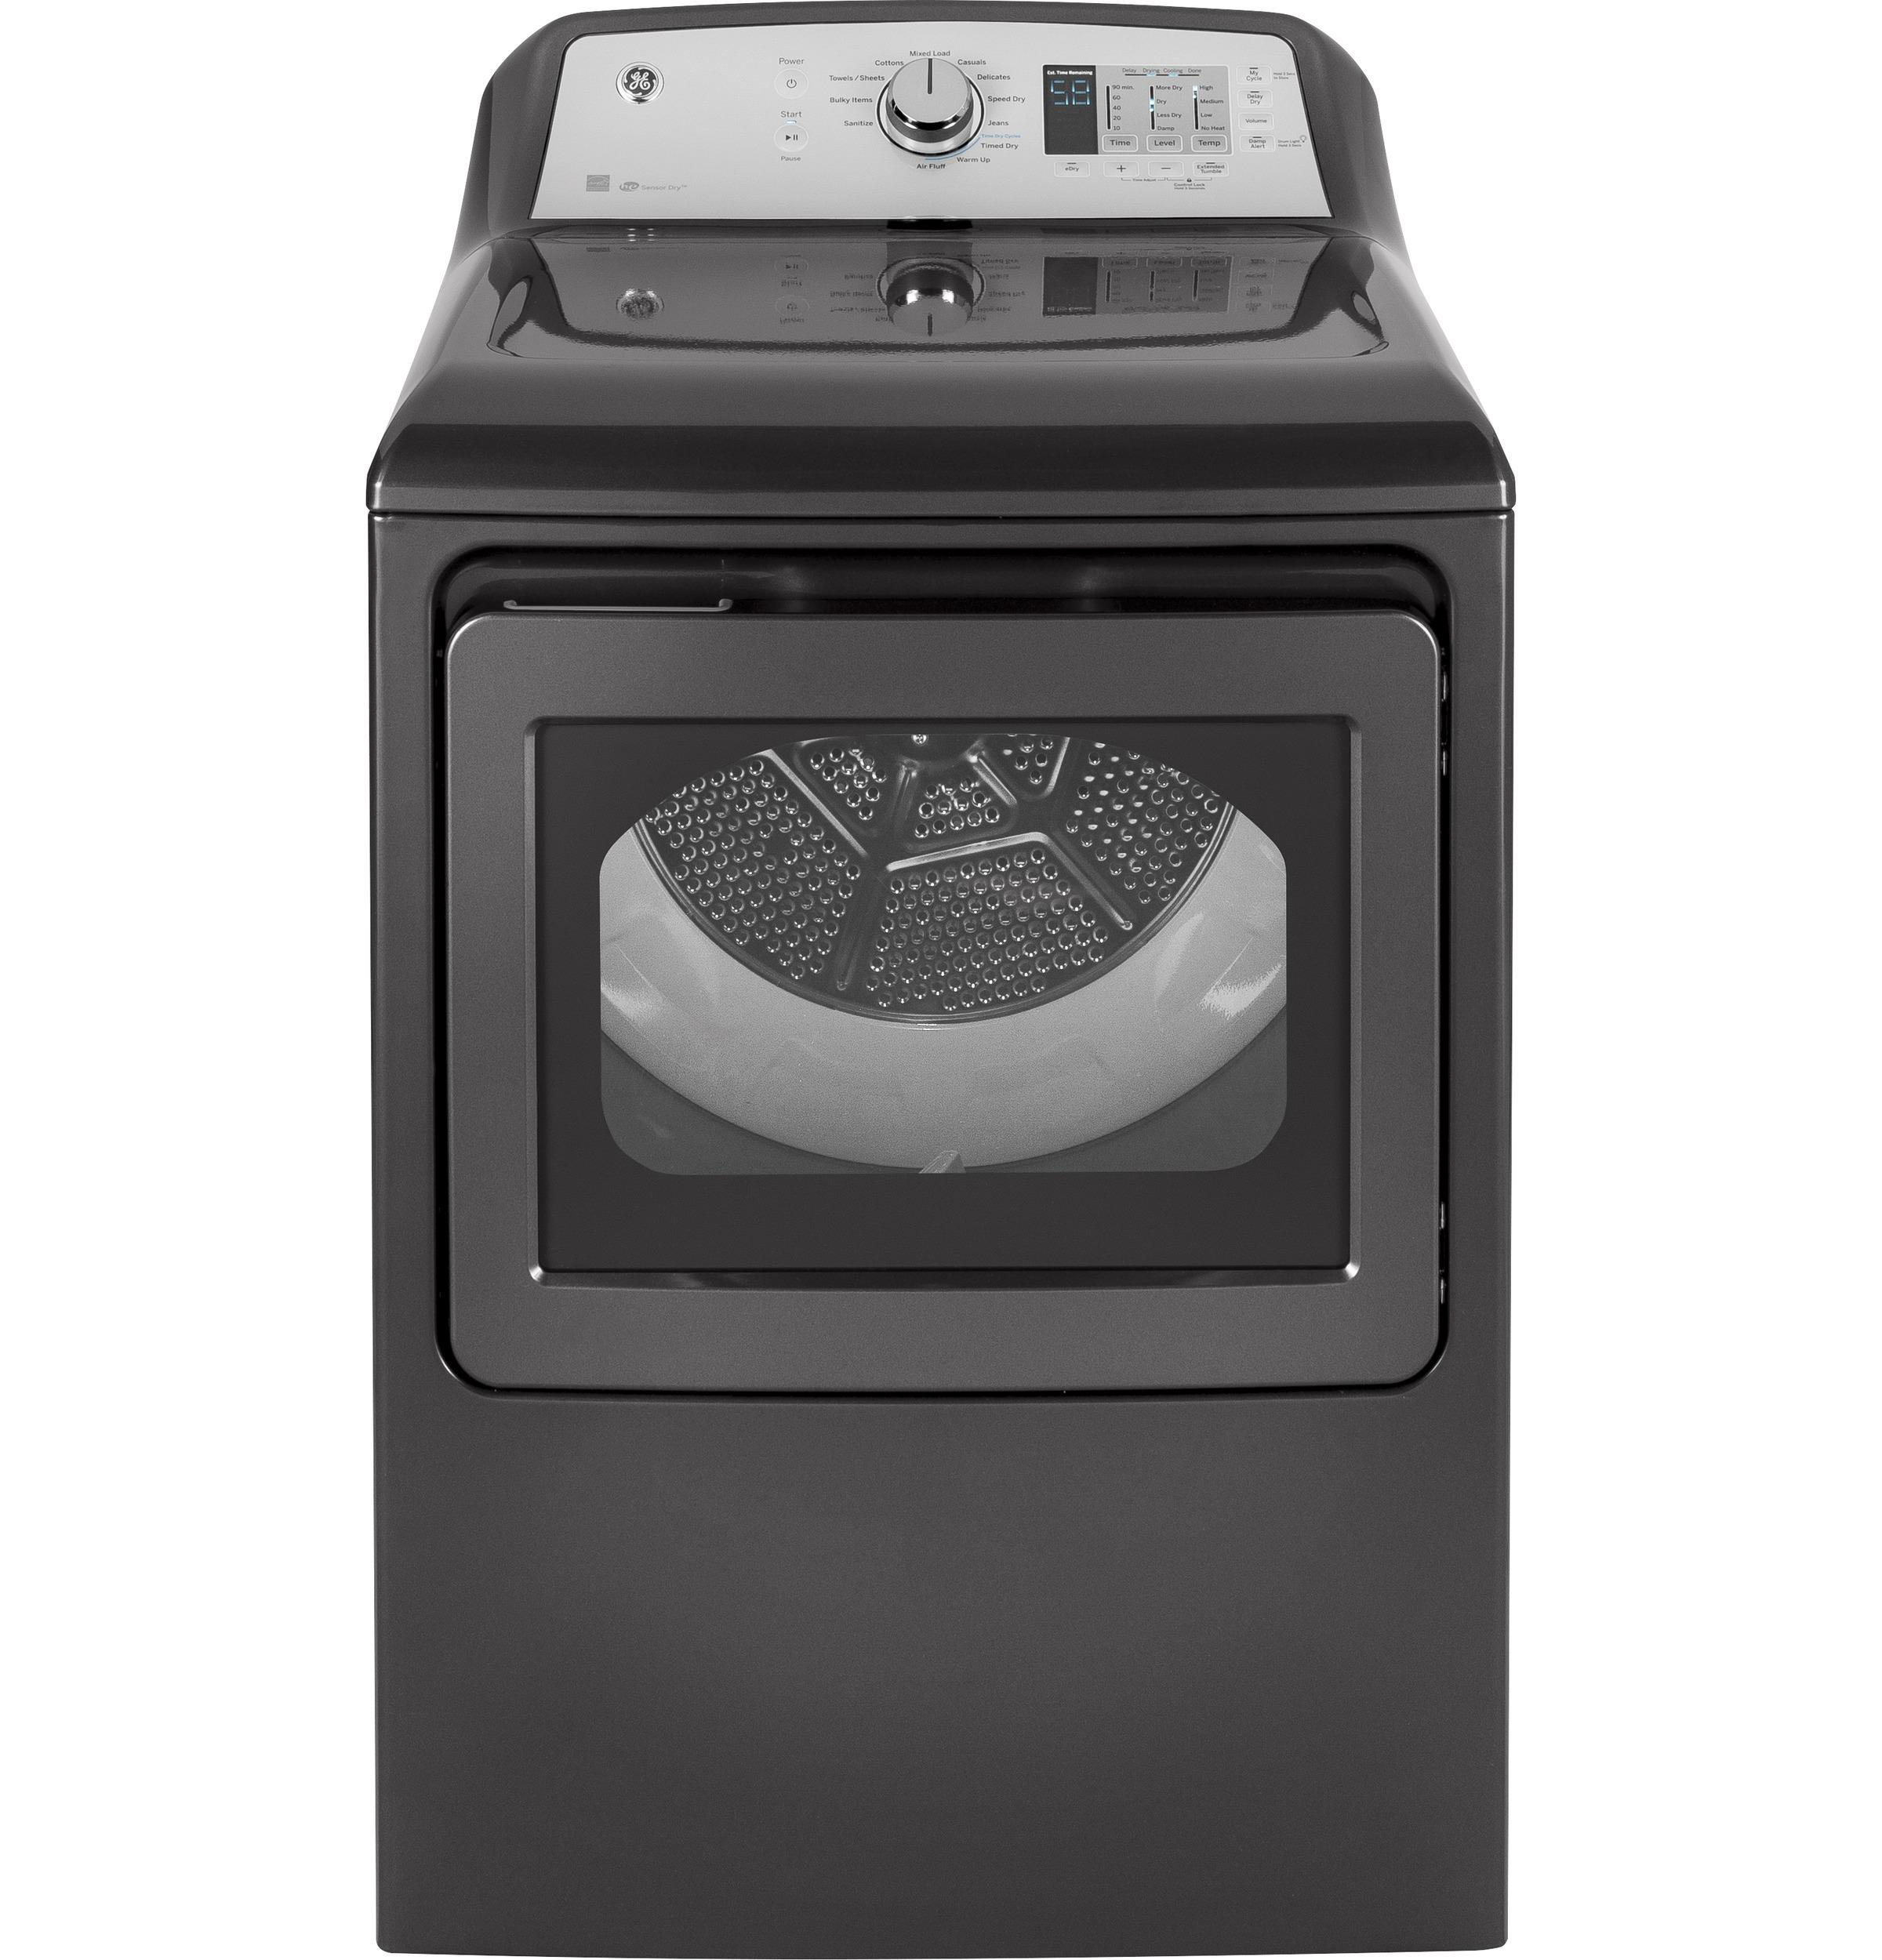 GE(R) 7.4 cu. ft. capacity aluminized alloy drum electric dryer with HE Sensor Dry